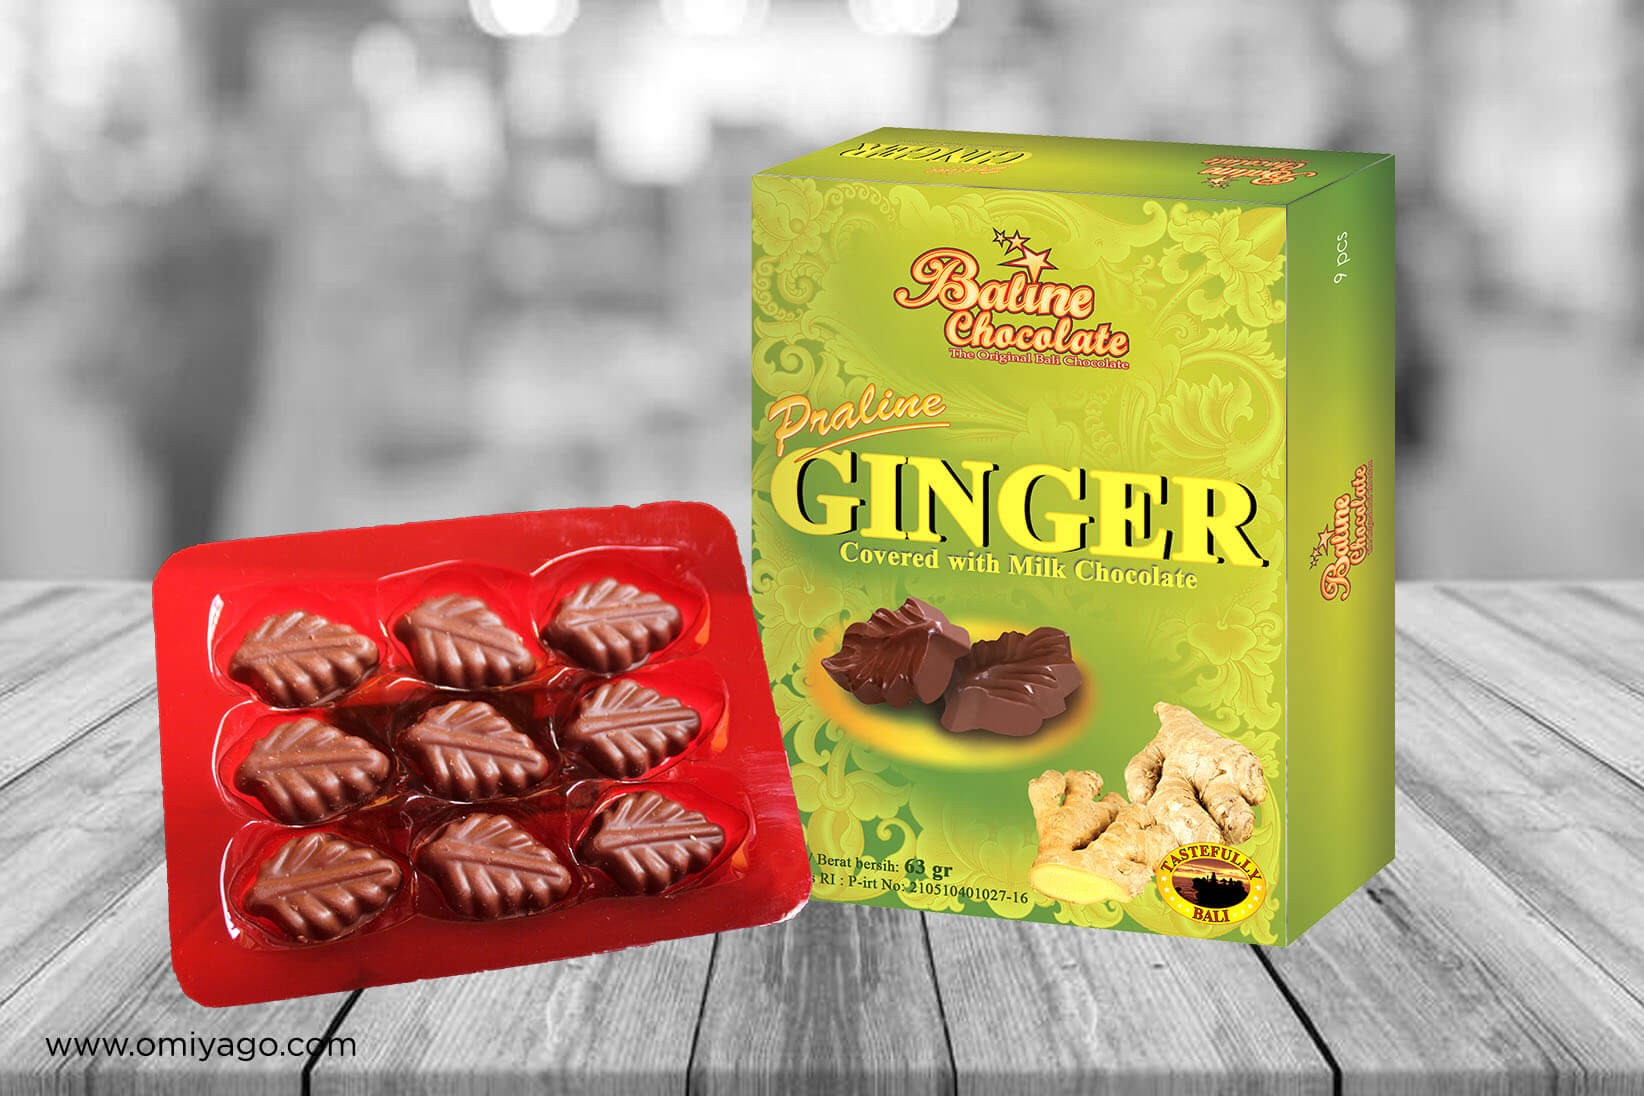 Baline Chocolate Praline Ginger